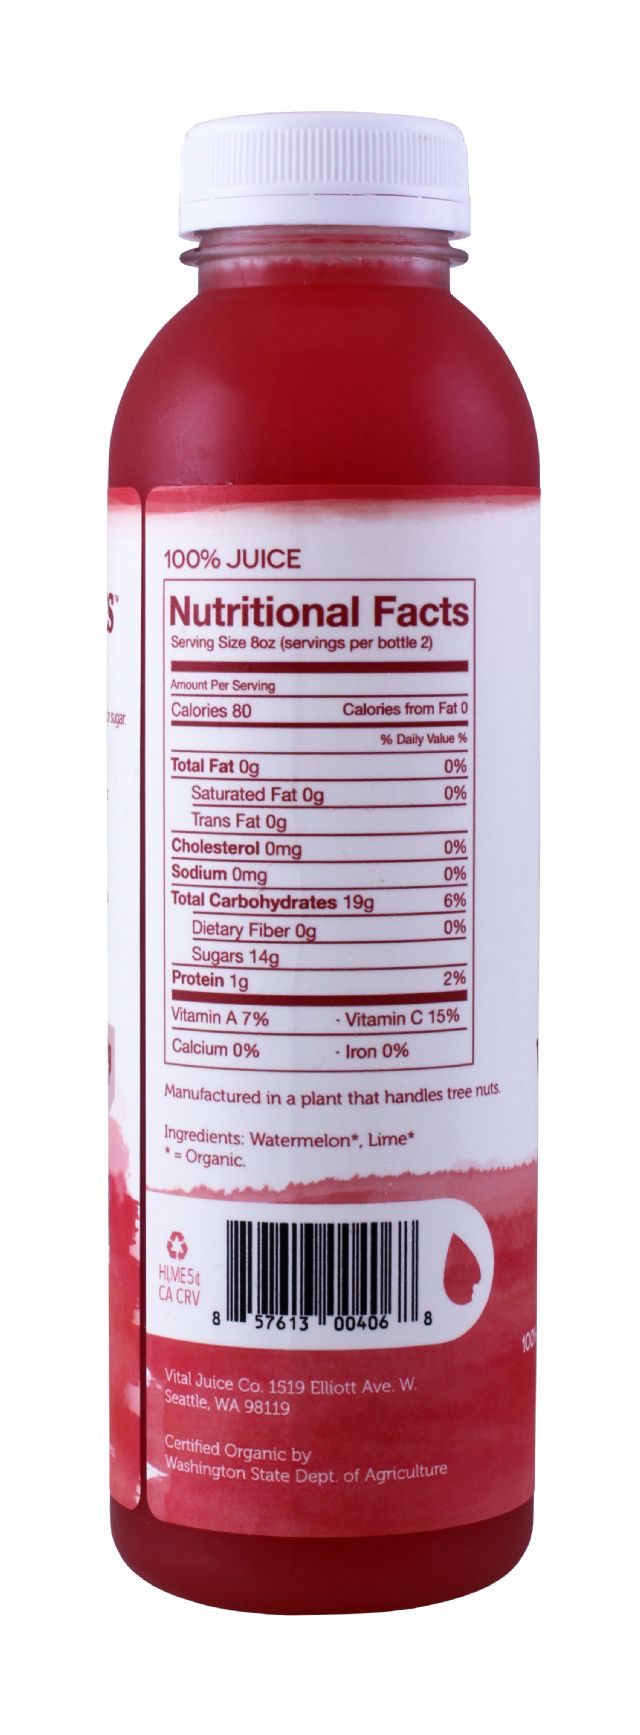 Vital Juice: VitalMelon LG Facts